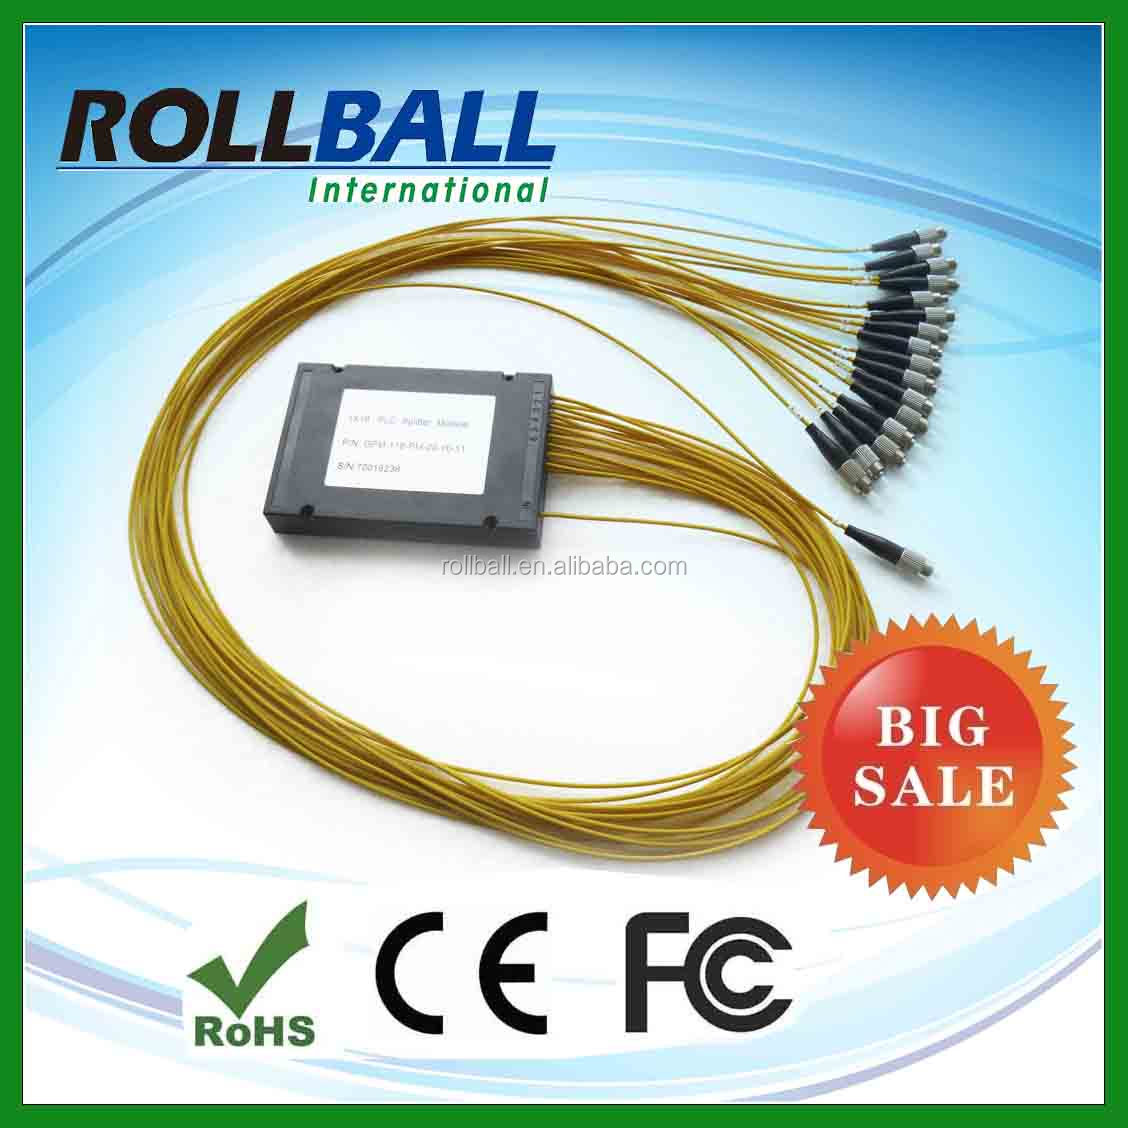 Small size high performance 1x8 plc splitter sc